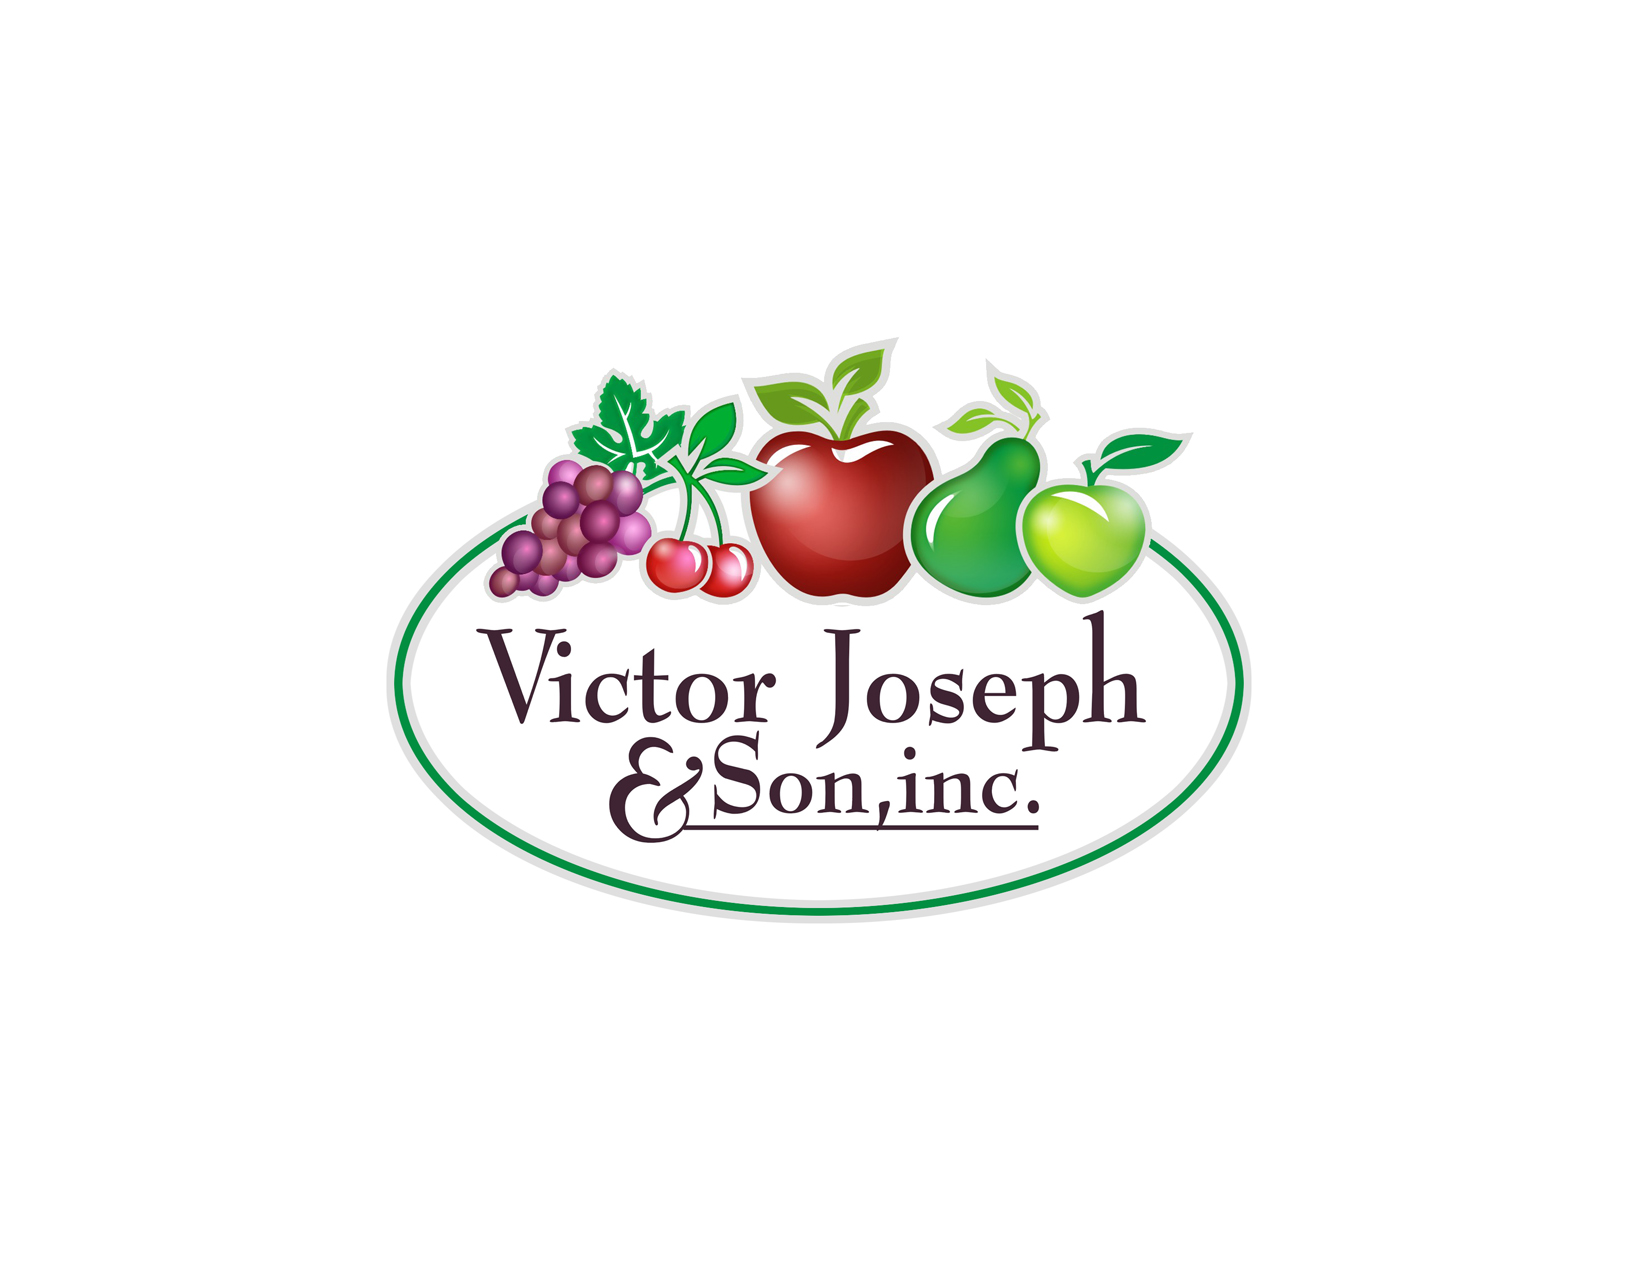 Logo Design by Private User - Entry No. 251 in the Logo Design Contest Imaginative Logo Design for Victor Joseph & Son, Inc..